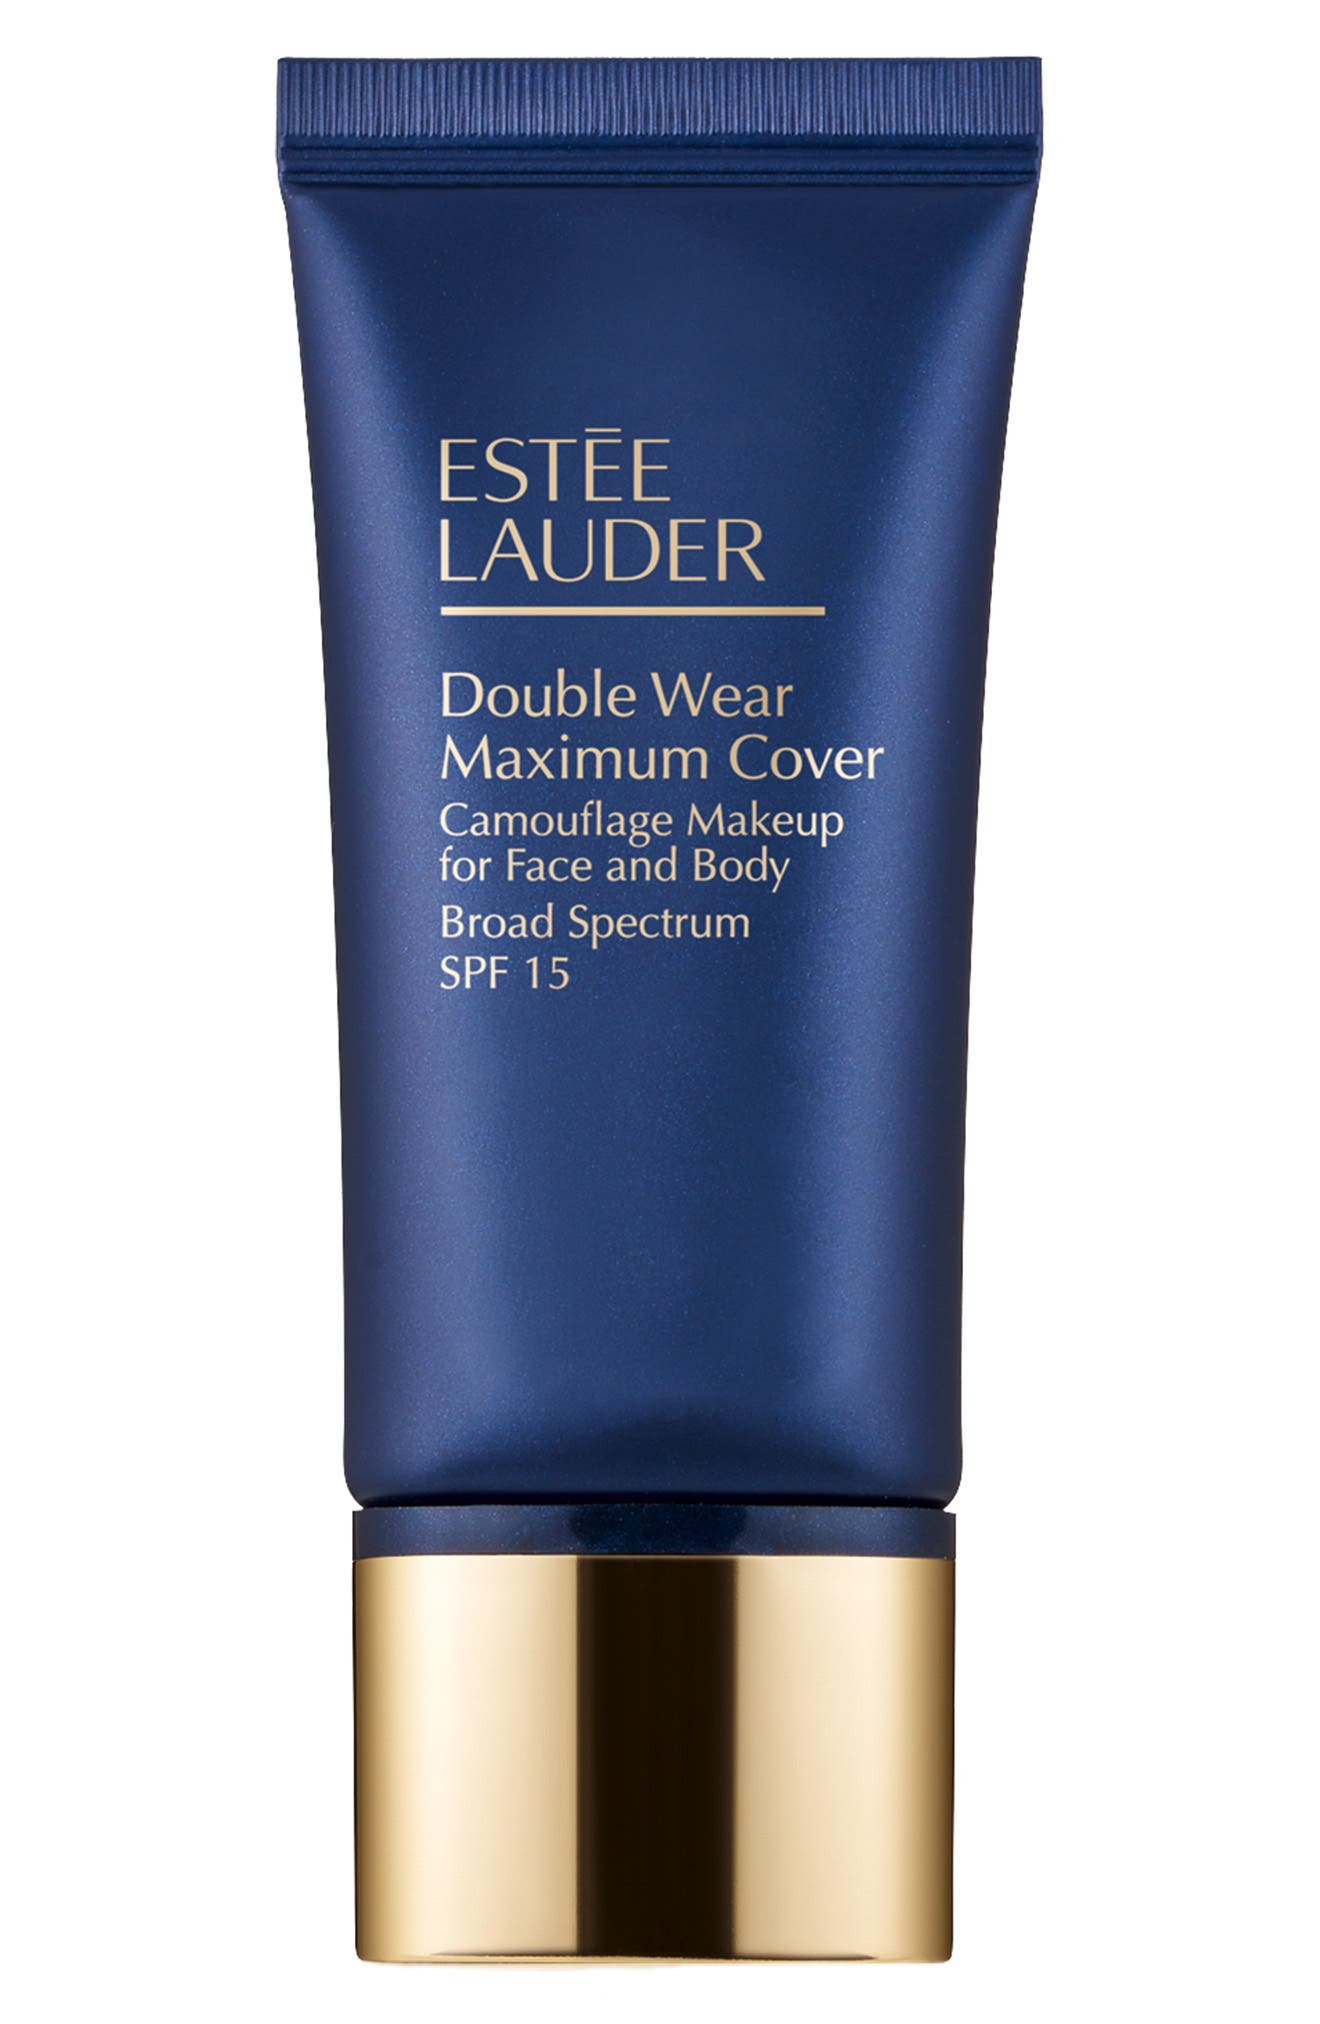 Estee Lauder Double Wear Maximum Cover Camouflage Makeup For Face And Body Spf 15 - Creamy Tan Medium